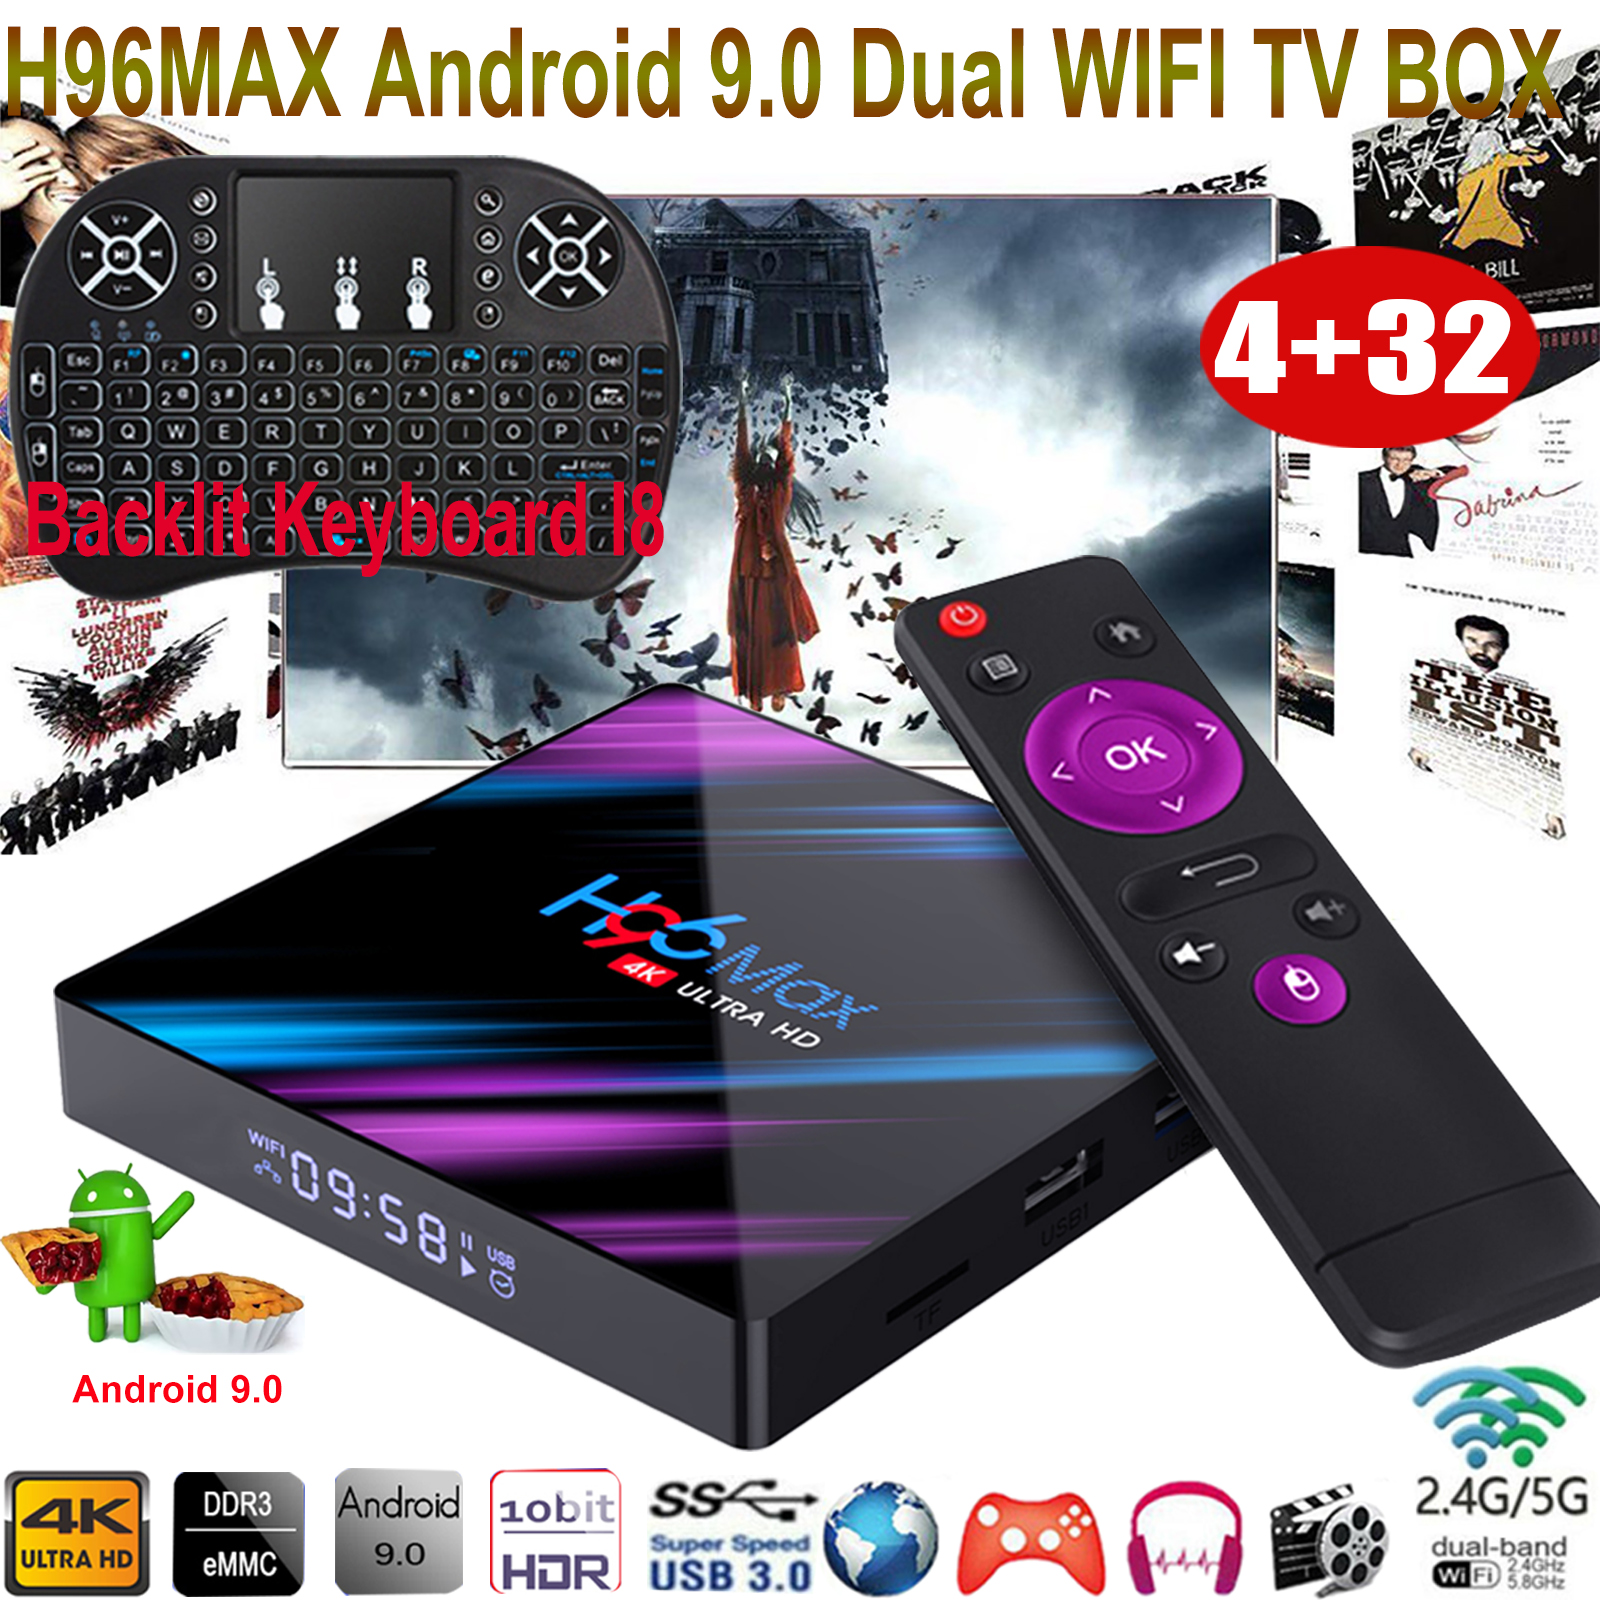 H96 MAX 4+32G Android 9.0 Keyboard I8 TV BOX 4K Quad Core 2.4/5G WIFI USB3.0 3D android box core h96 keyboard max quad wifi